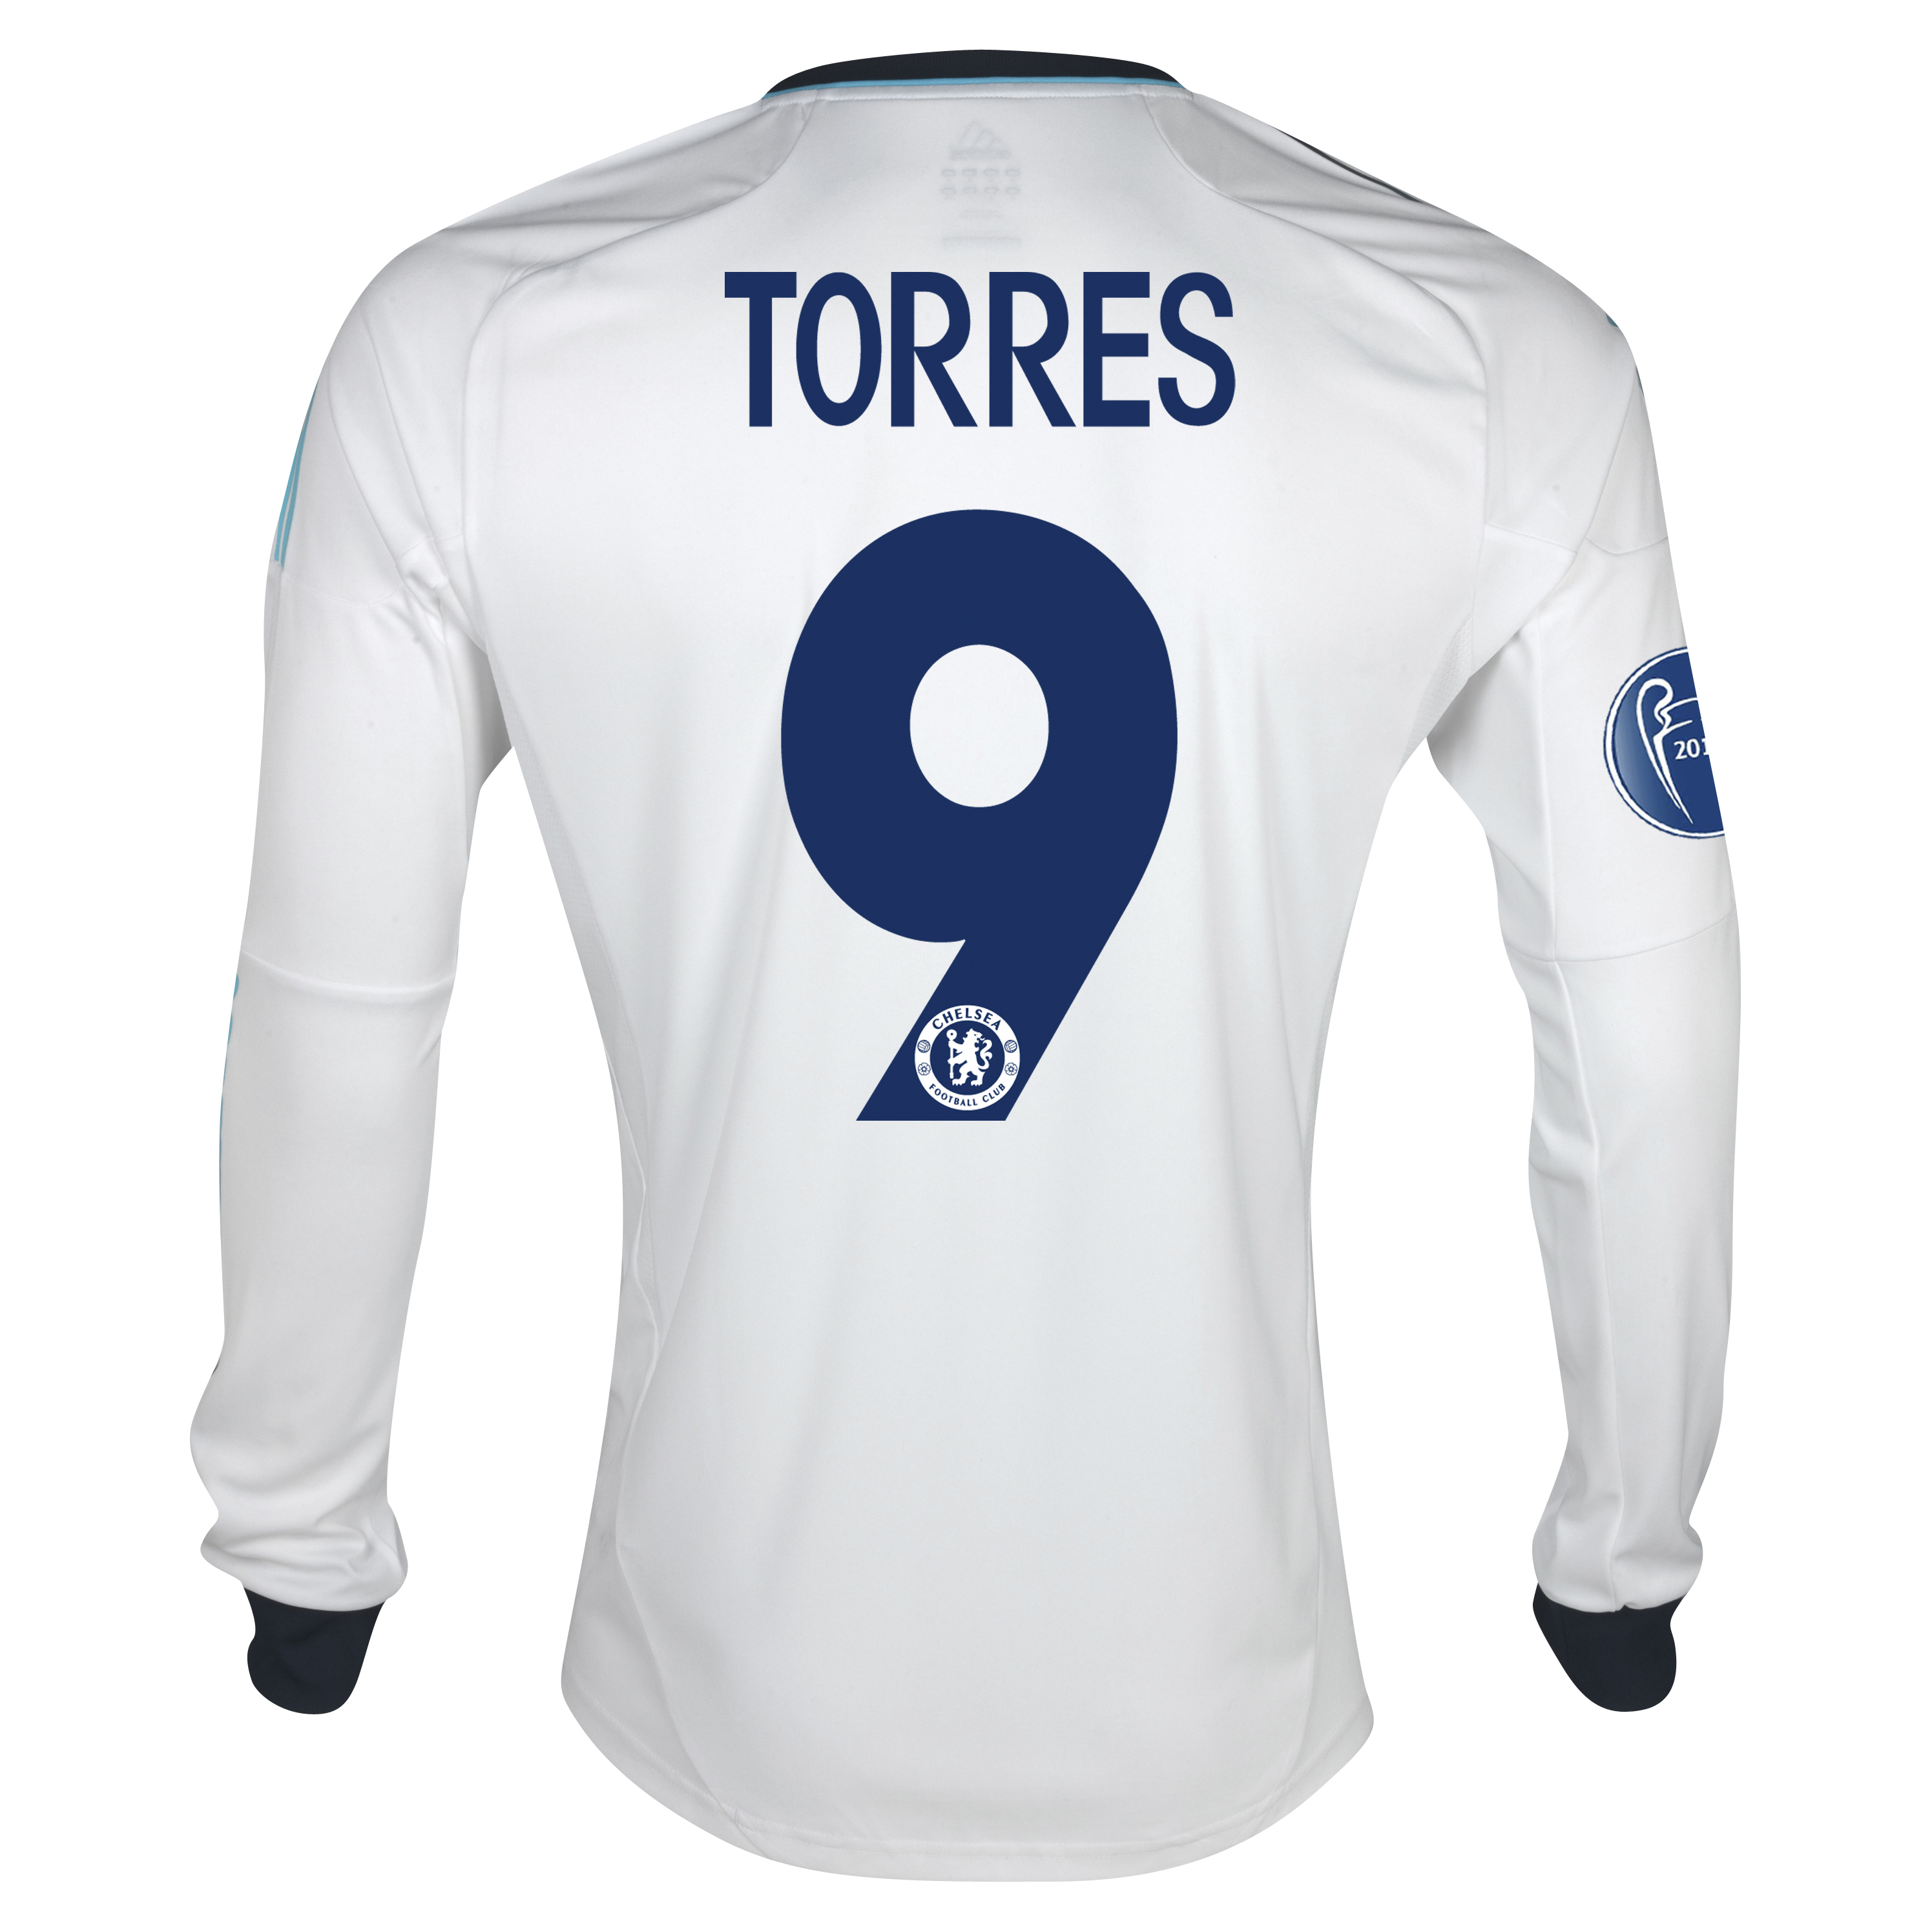 Chelsea UEFA Champions League Away Shirt 2012/13 - Long Sleeved - Kids with Torres 9 printing